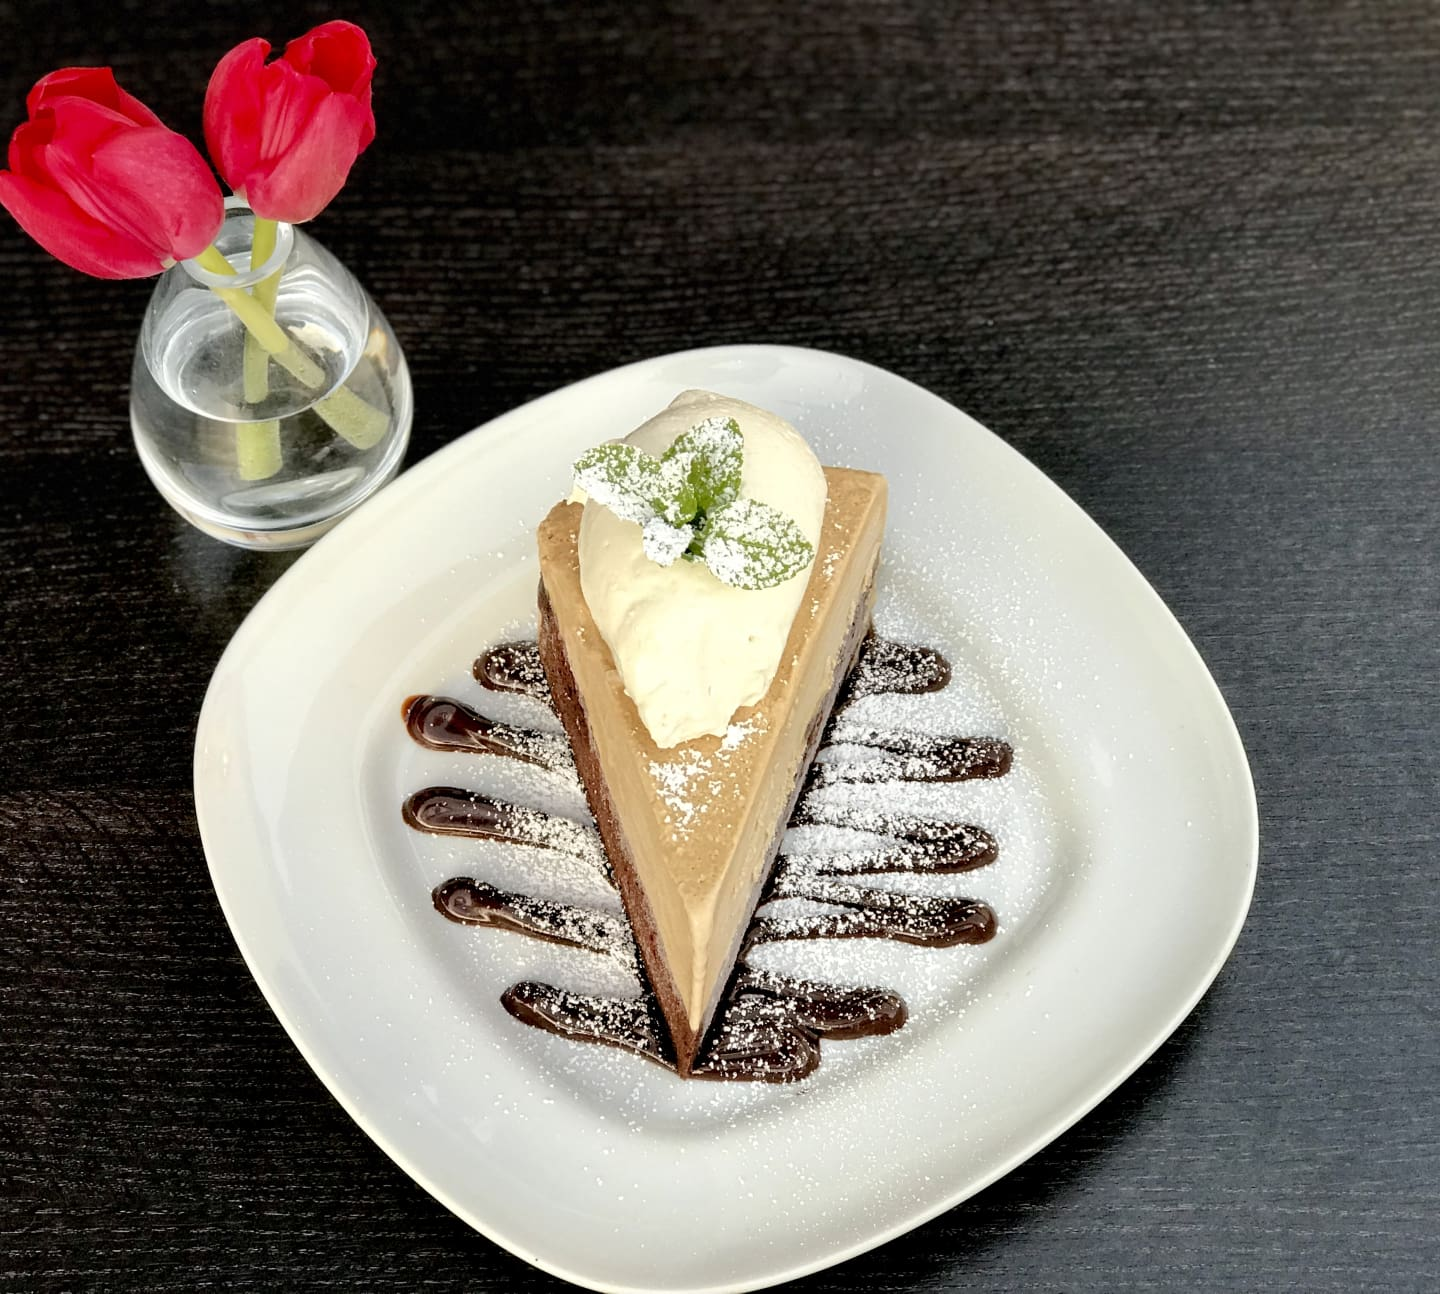 Mississippi Mud Pie w/ Coffee Ice Cream, Oreo Crust,  Chocolate Sauce & Whip Cream